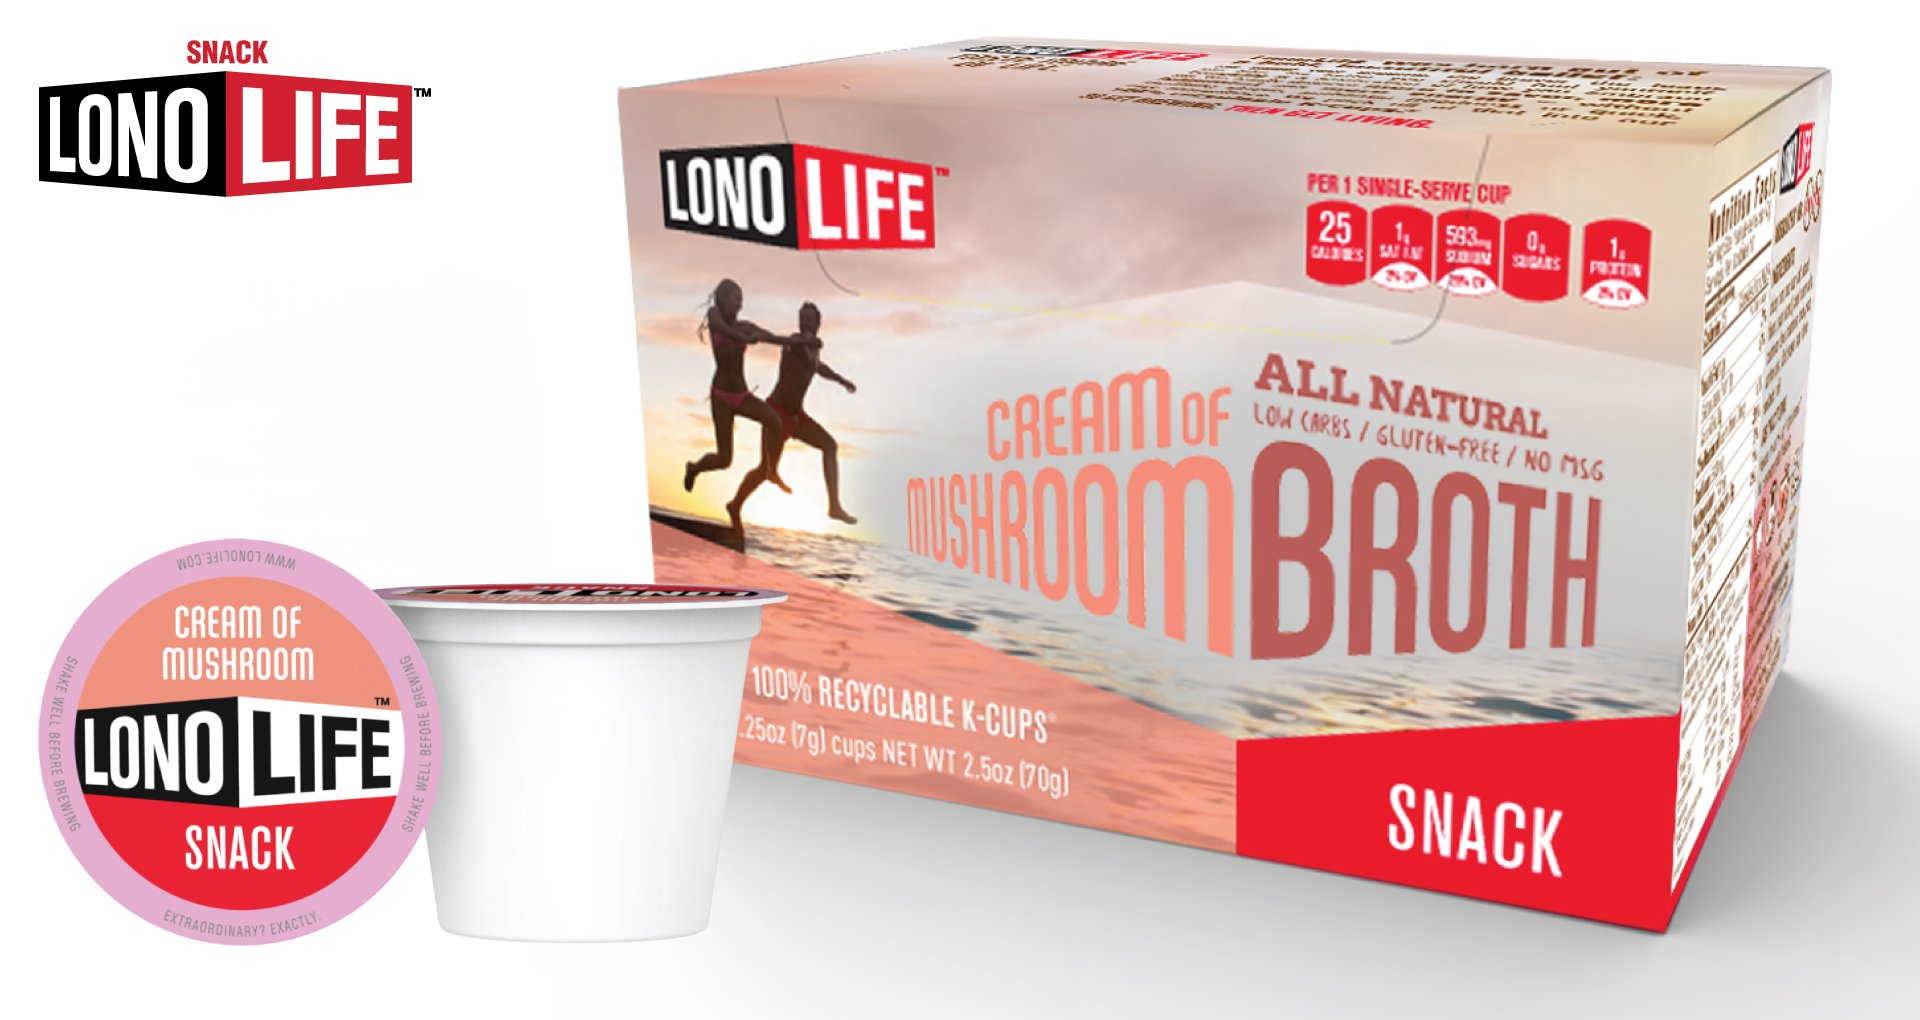 Lonolife Cream of Mushroom Broth Snack, Single Serve Cups, 10 Count